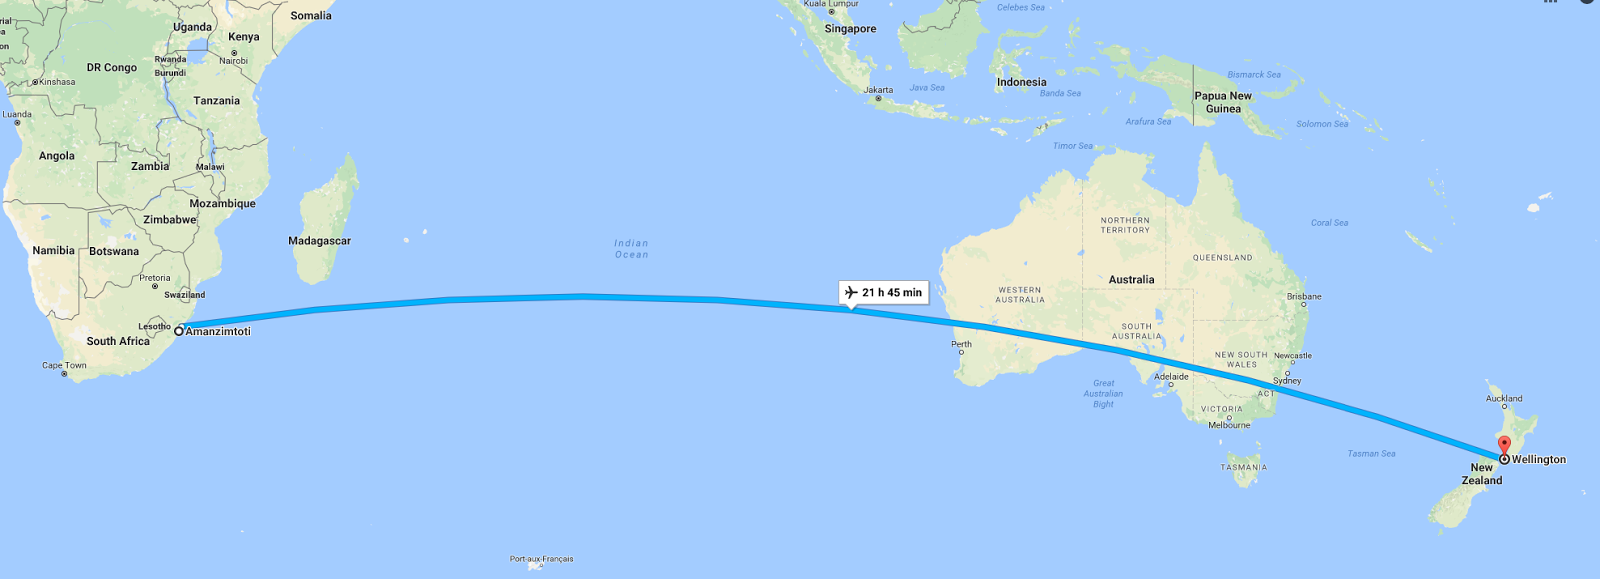 Distance between CPT and NZ